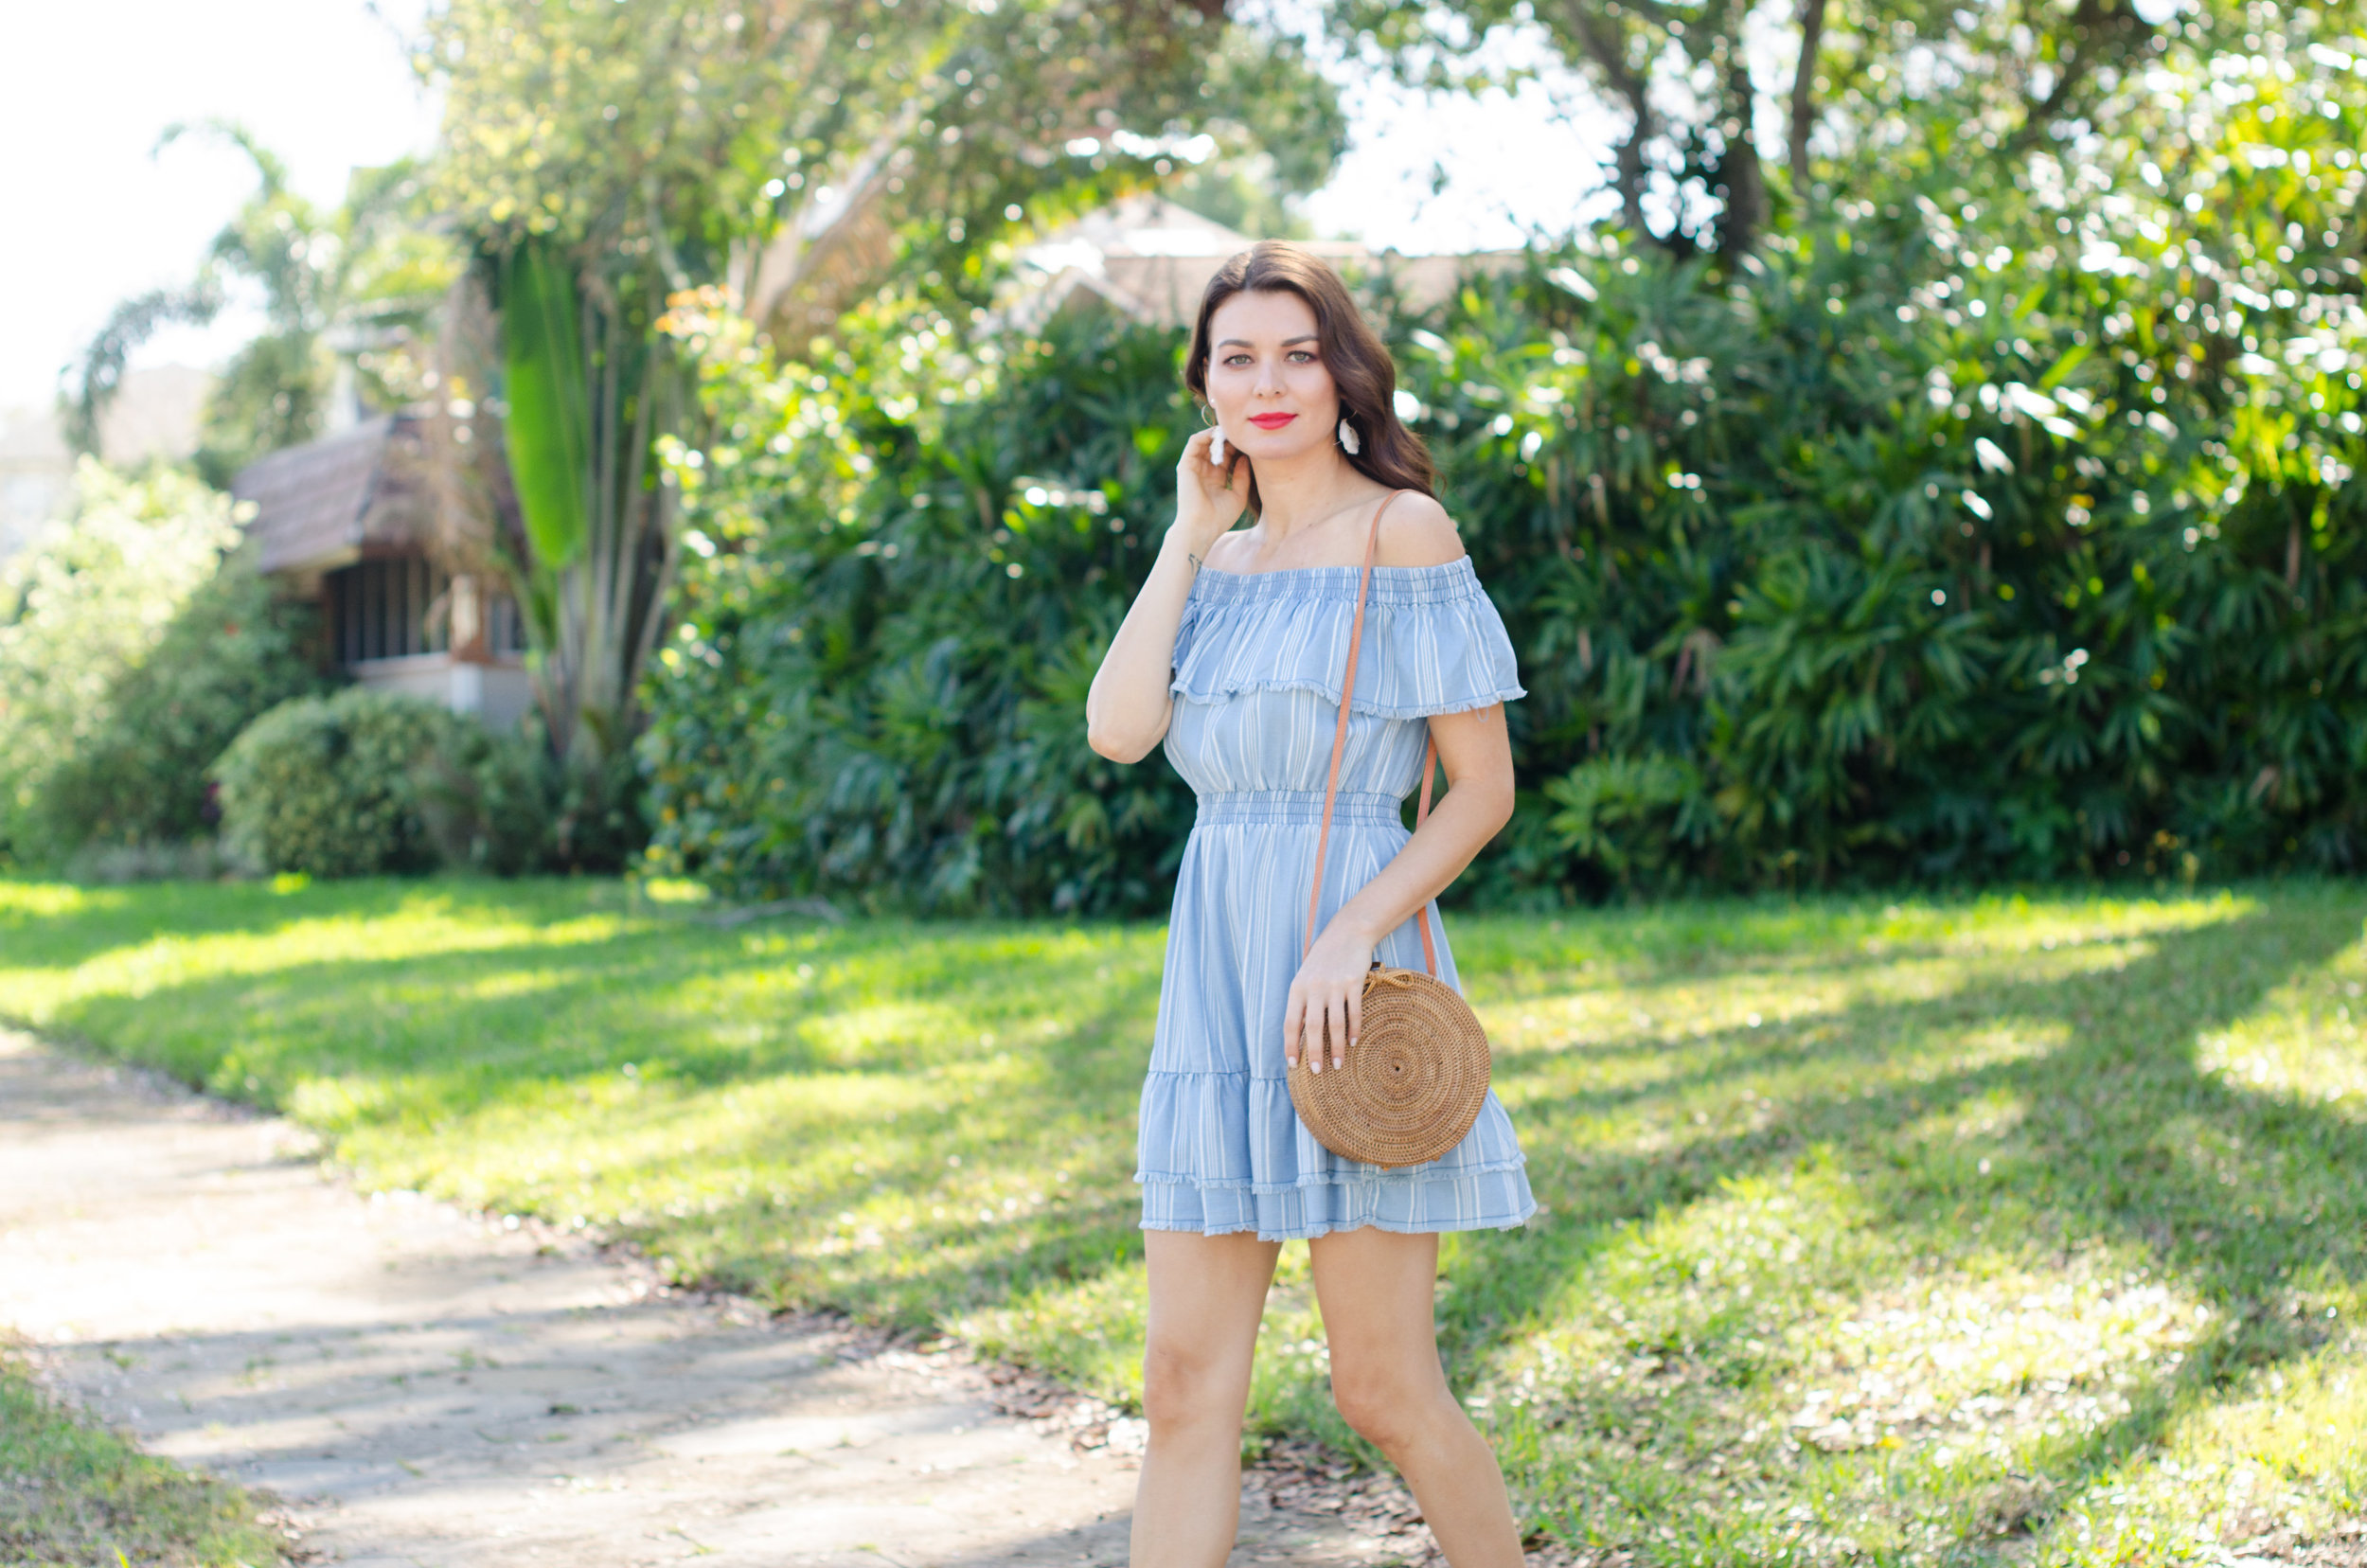 tampabay_stpete_florida_portrait_photographer_canvas_boutique_blue_stripe_dress.jpg